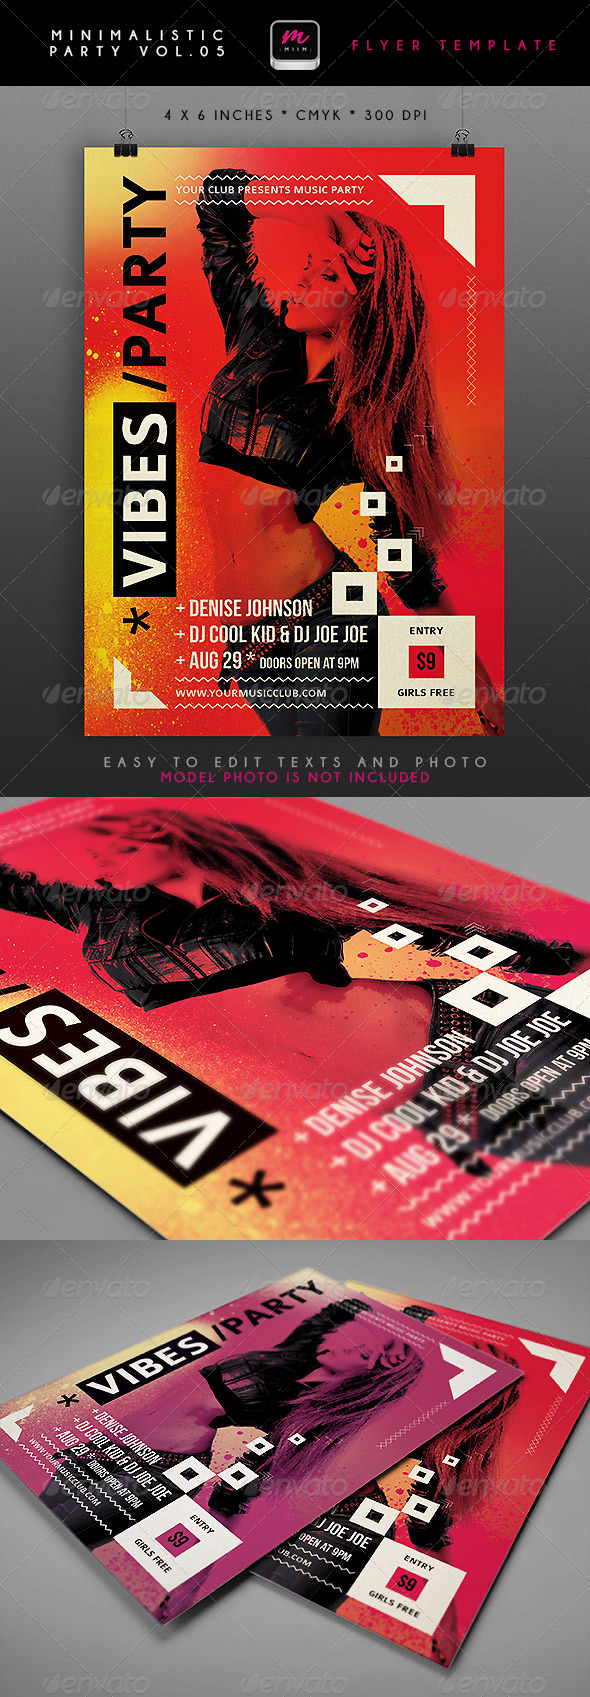 GraphicRiver Minimalistic Party Flyer 5 4848141